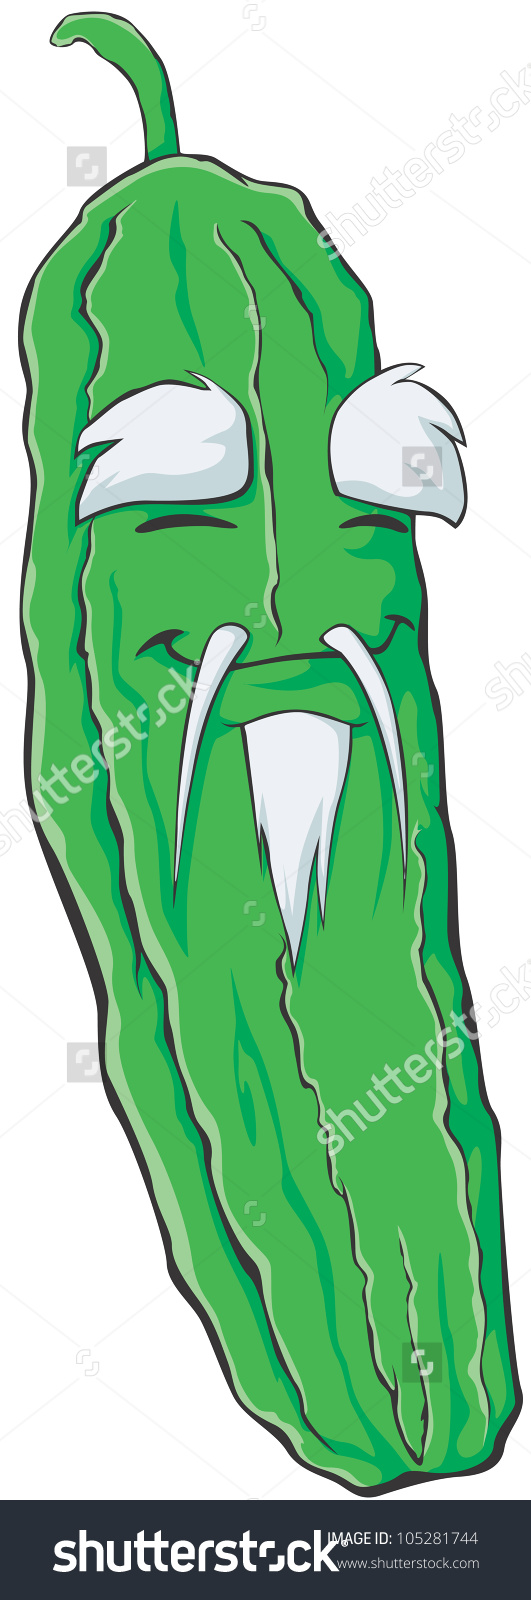 Bitter Gourd Cartoon Stock Vectors & Vector Clip Art.